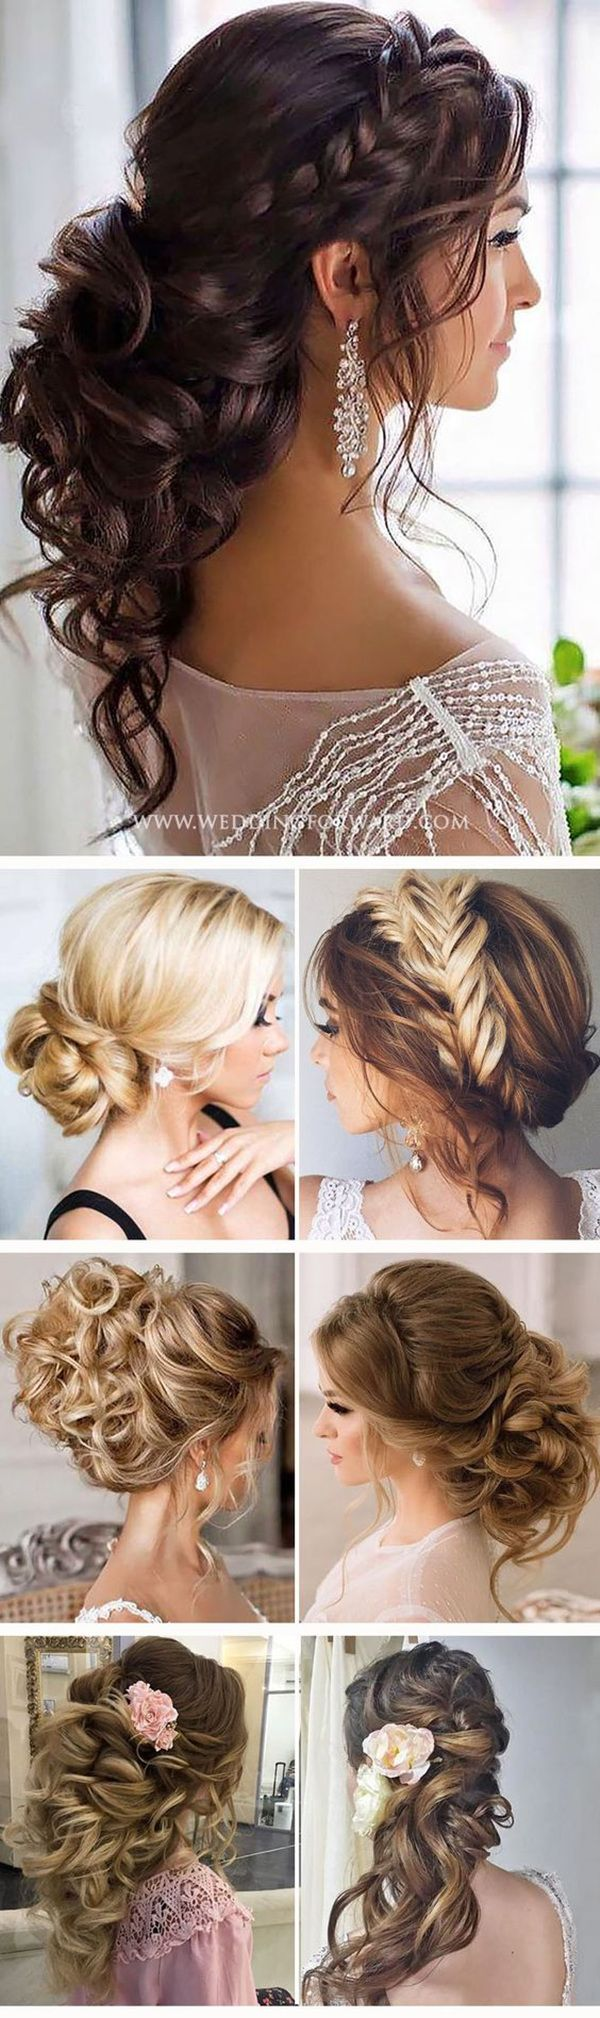 Top wedding hairstyles youull love for trends hair